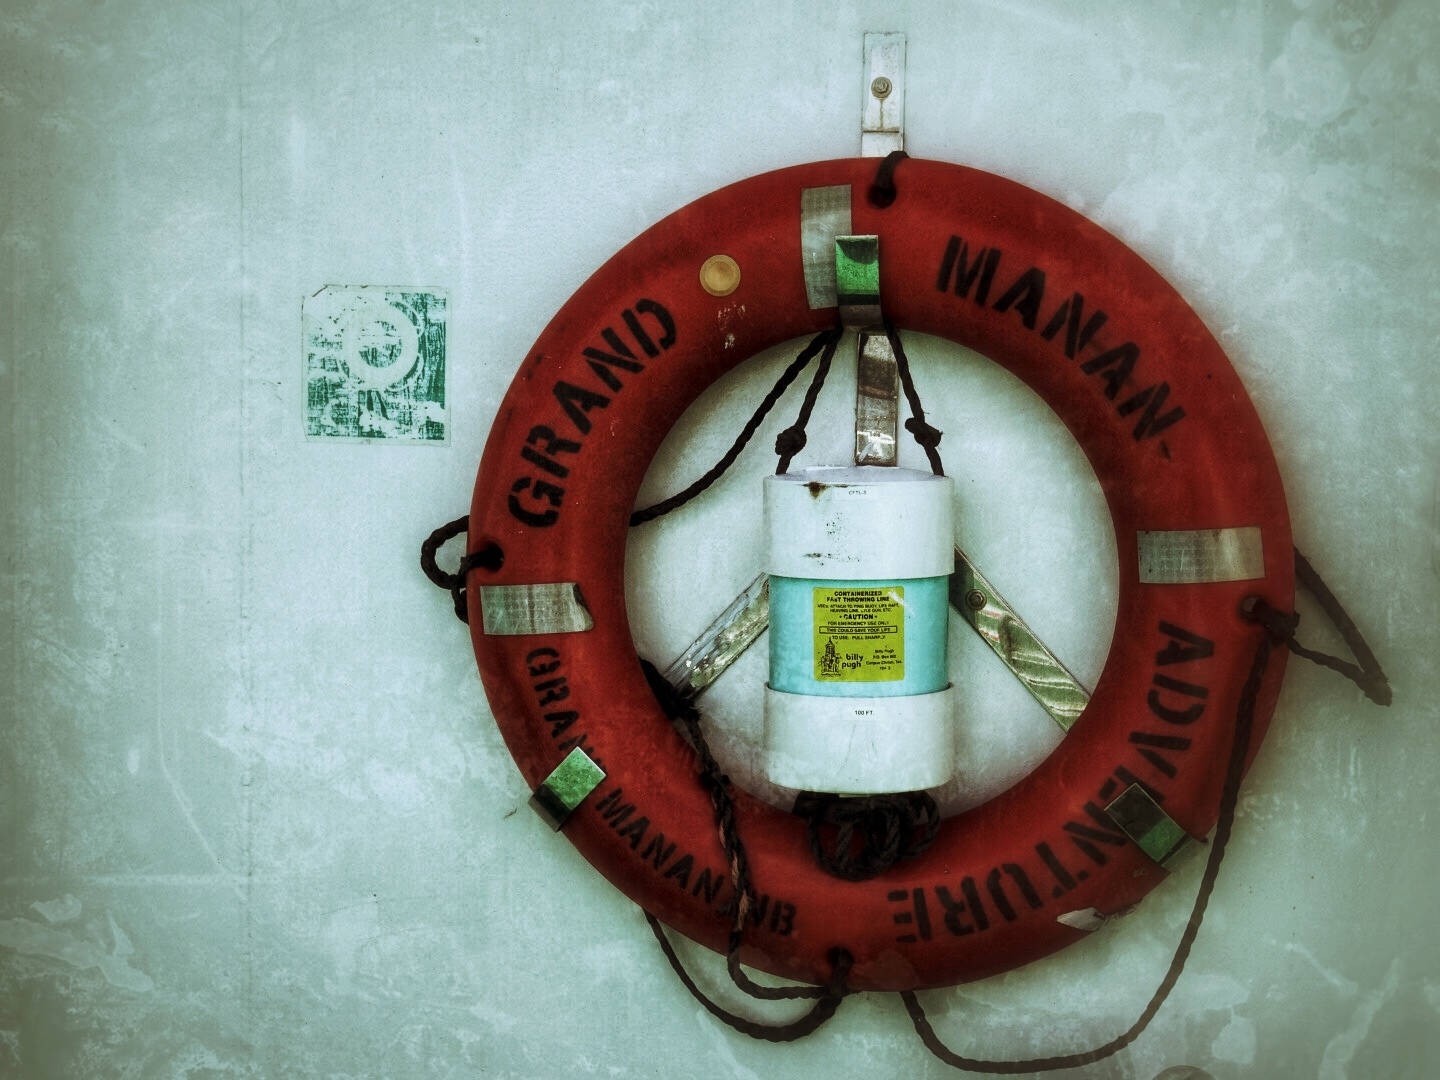 A life ring on the Grand Manan Adventure ferry boat